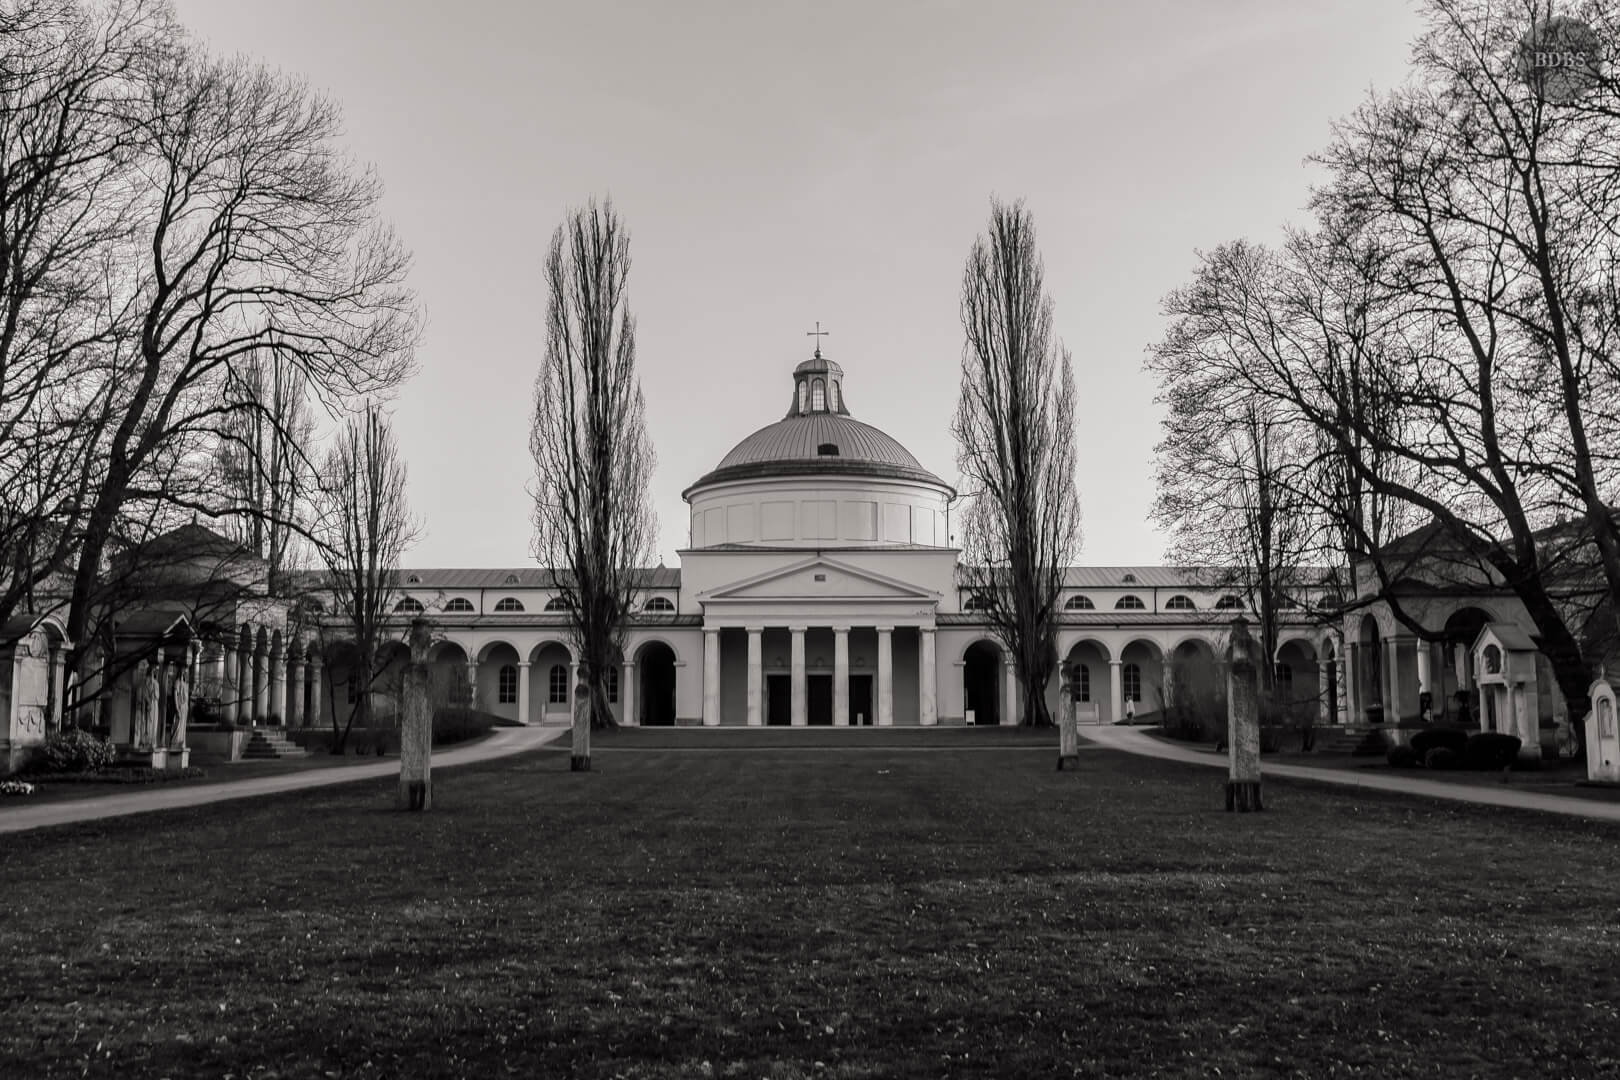 Ostfriedhof HDR ( 1/200 - f8,0 - 35mm - ISO100 )